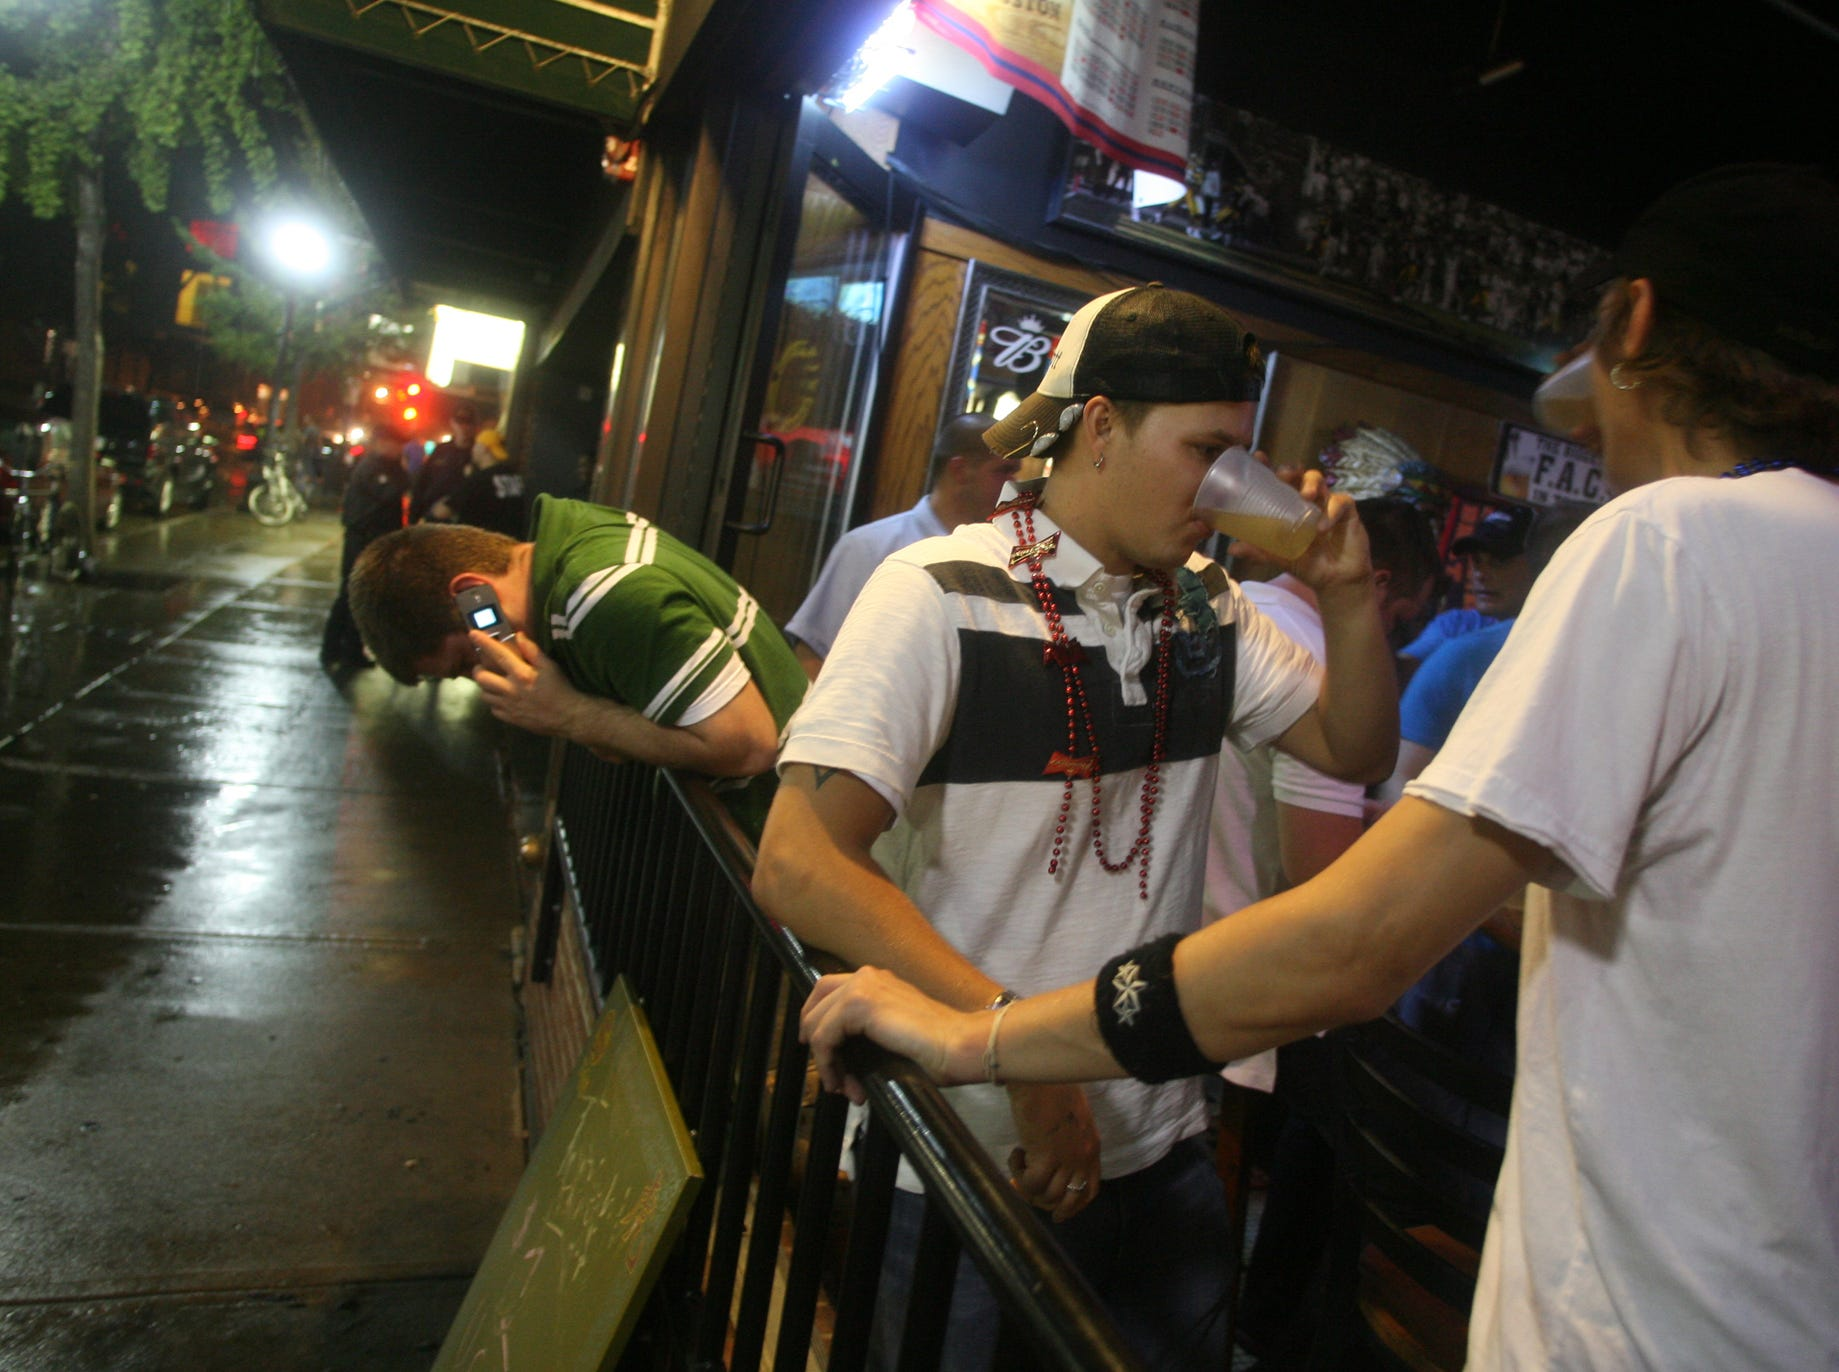 Ryan Kramer,center, and Drew McKnight, right, drink beer at the Sports Column, on Thursday, Aug. 23, 2007, in downtown Iowa City, Iowa.